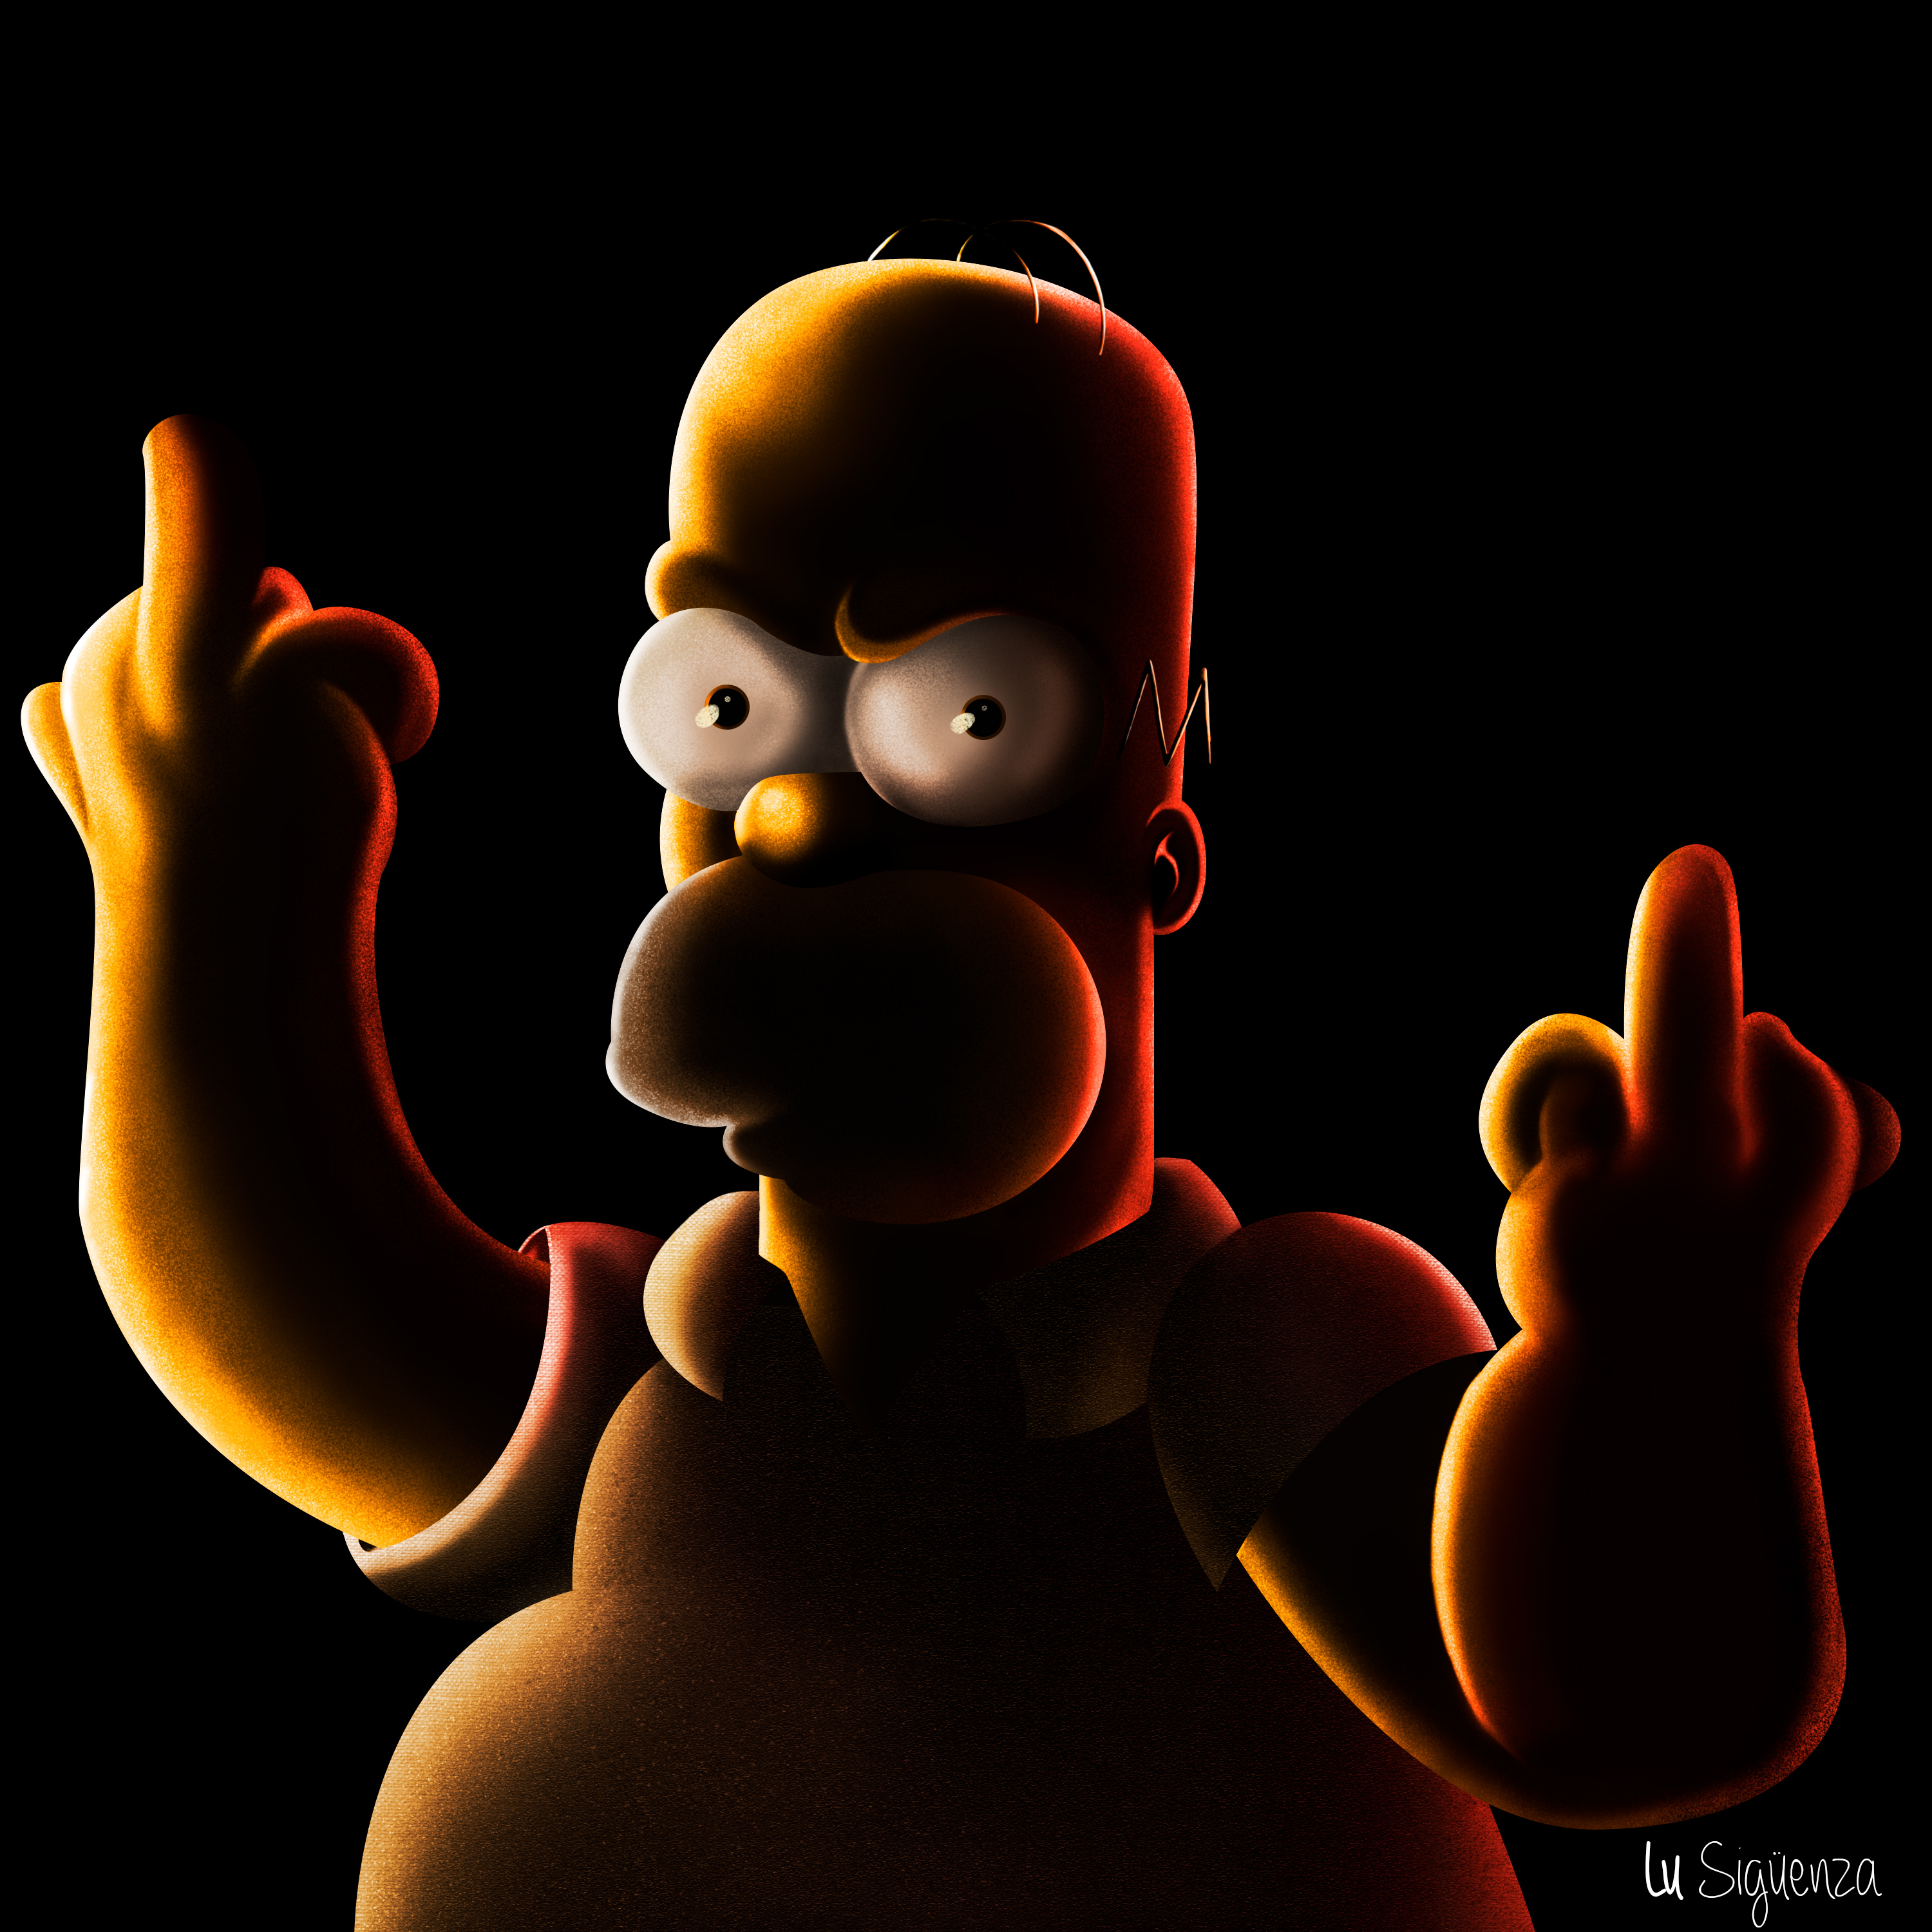 Bart Simpson Hd Tv Shows 4k Wallpapers Images